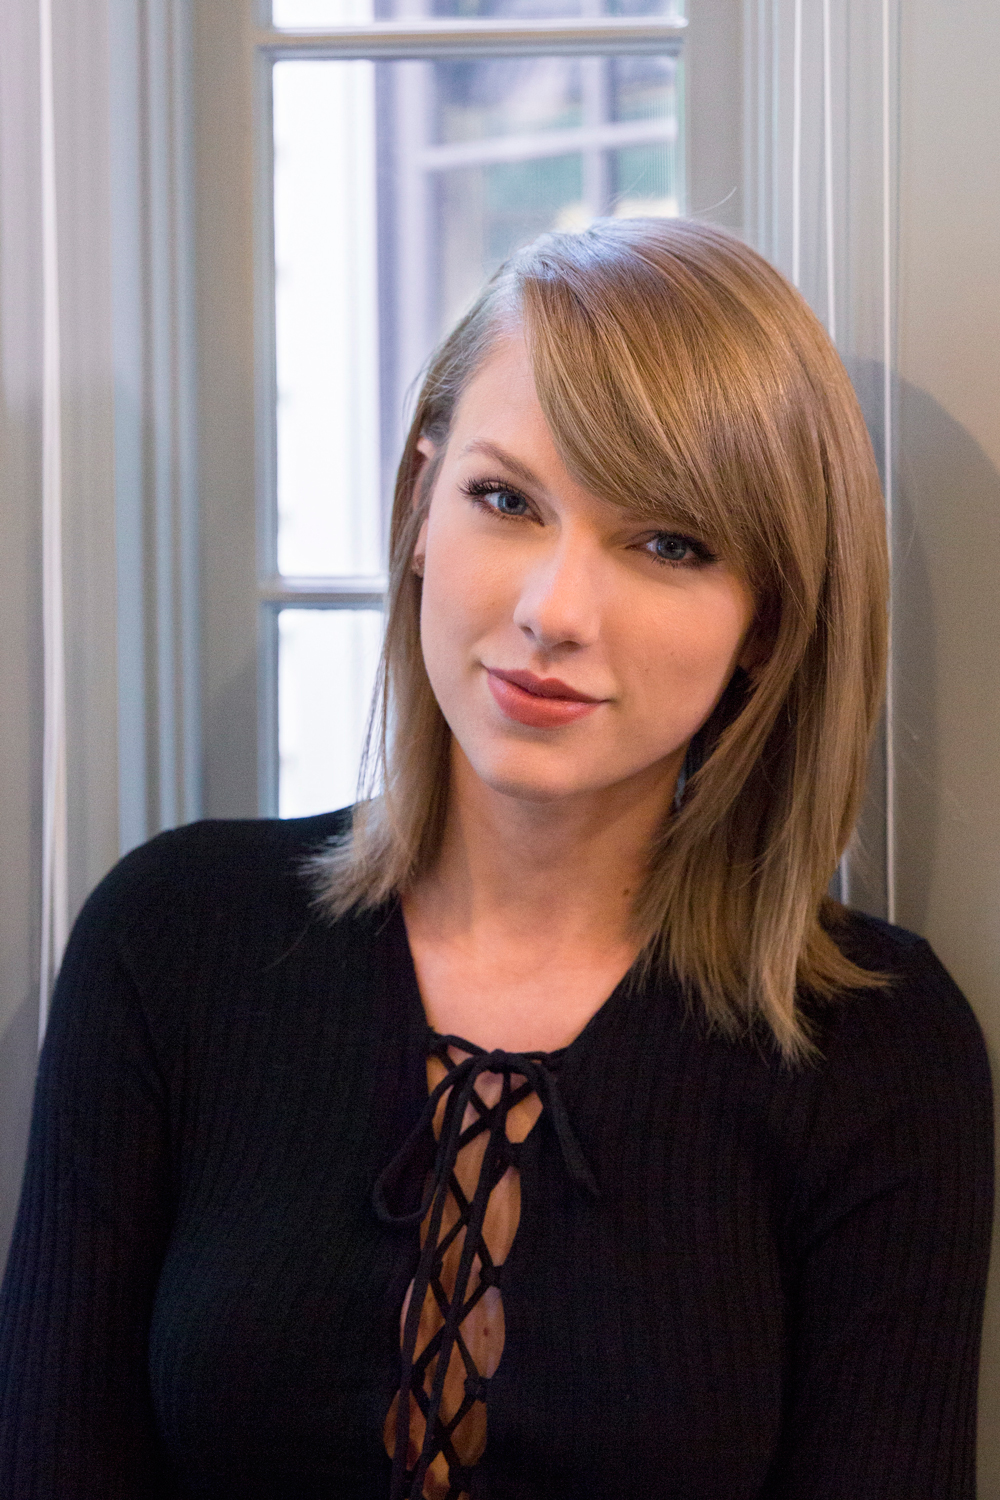 Taylor Swift for Vogue Video